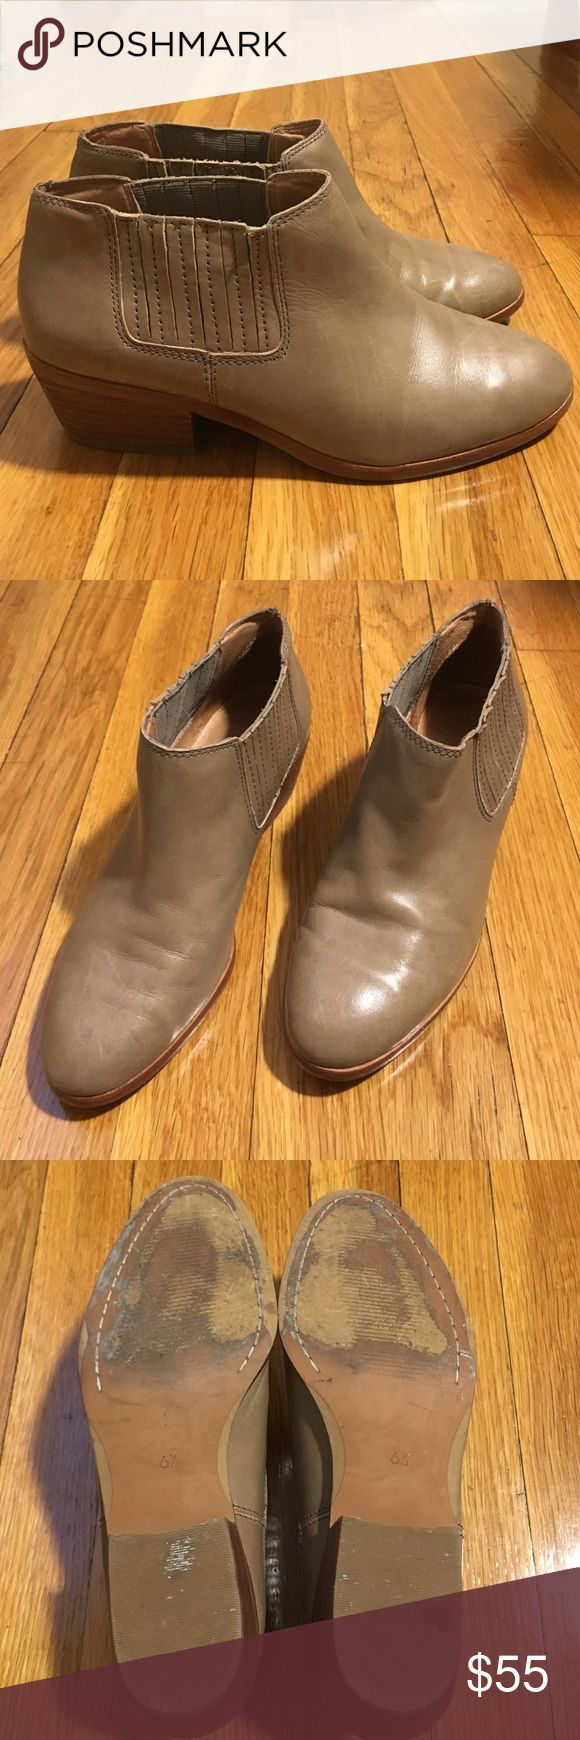 "Madewell Spencer Chelsea Boot in Mink (tan) Tan leather Chelsea boots from Madewell. Well loved but still in great condition. Small water mark (3rd pic) and tiny bit of stitching coming undone (first pic). Super cute booties and look adorable with skirts and jeans 👍🏼  Leather upper and lining. 3 1/8"" shaft height (based on size 7). 11 1/8"" shaft circumference (based on size 7). 2"" stacked heel. Man-made sole. Item C1375. Madewell Shoes Ankle Boots & Booties"